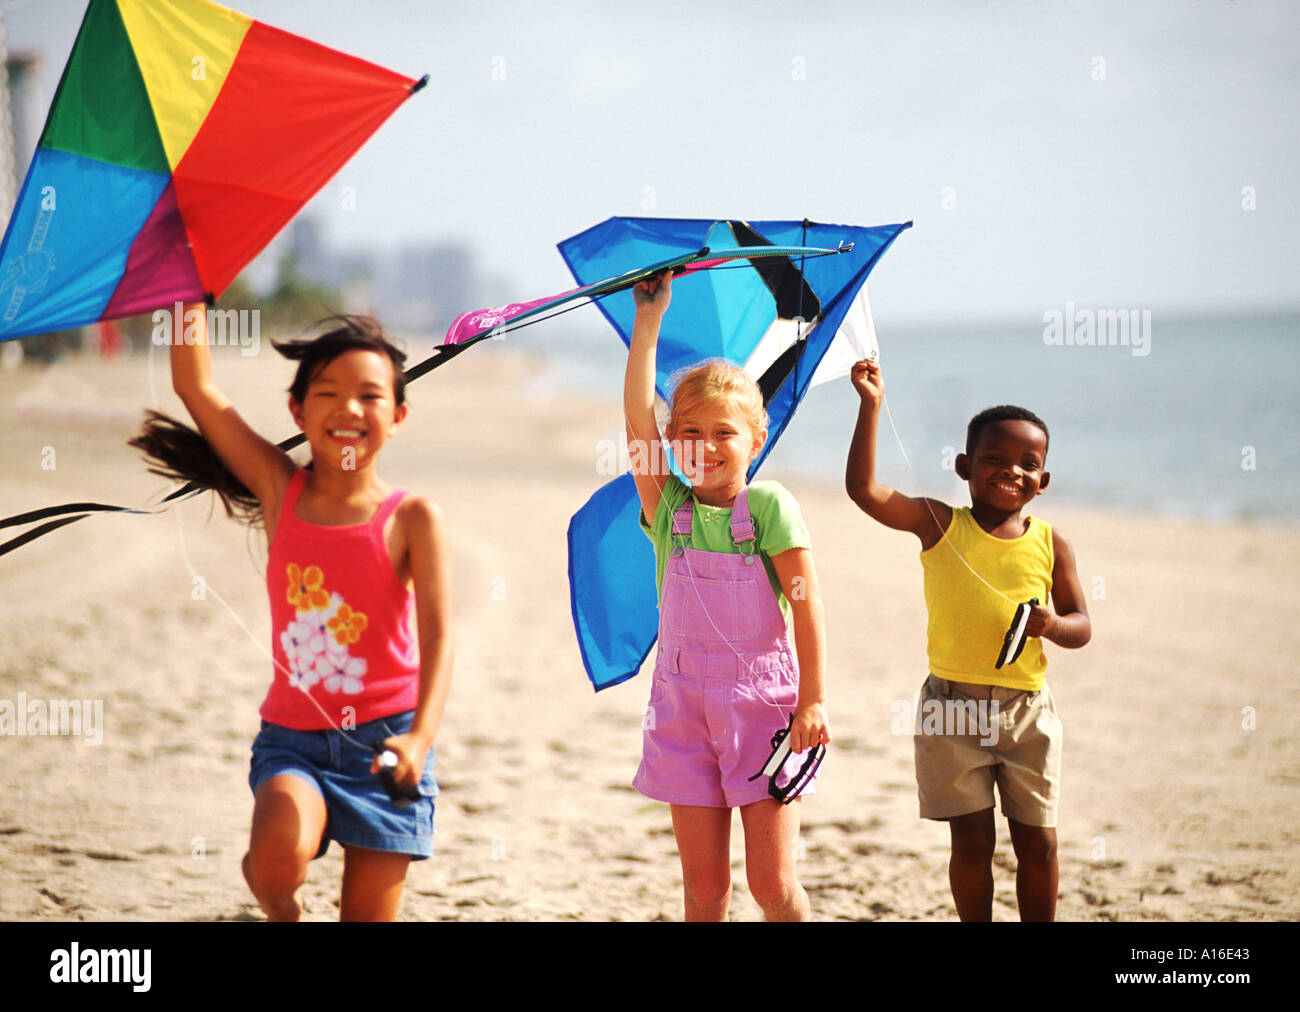 Children Age 6 Flying Kites On The Beach With Mixed Ethnic